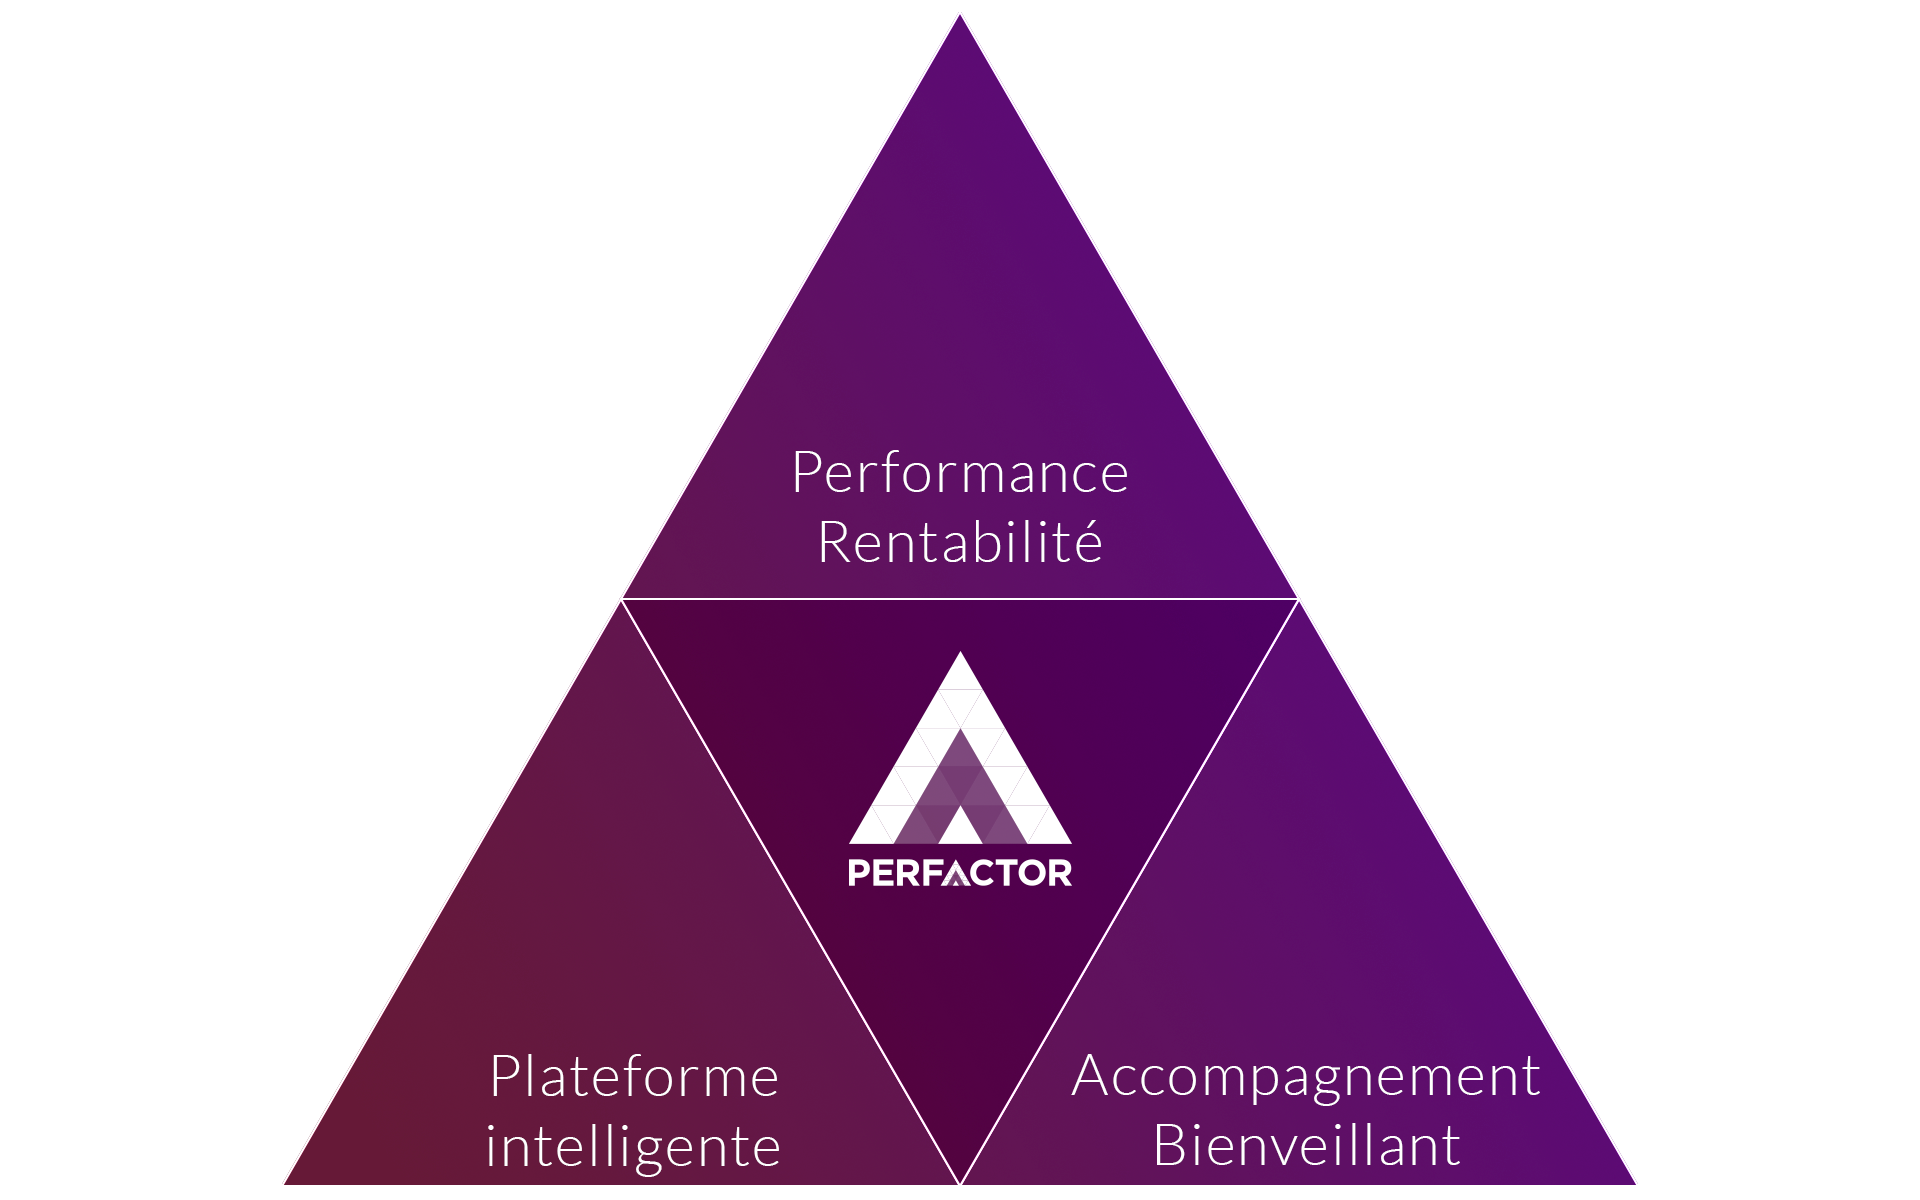 PERFACTOR-Triangle-Performance-Rentabilité-Plateforme-Accompagnement